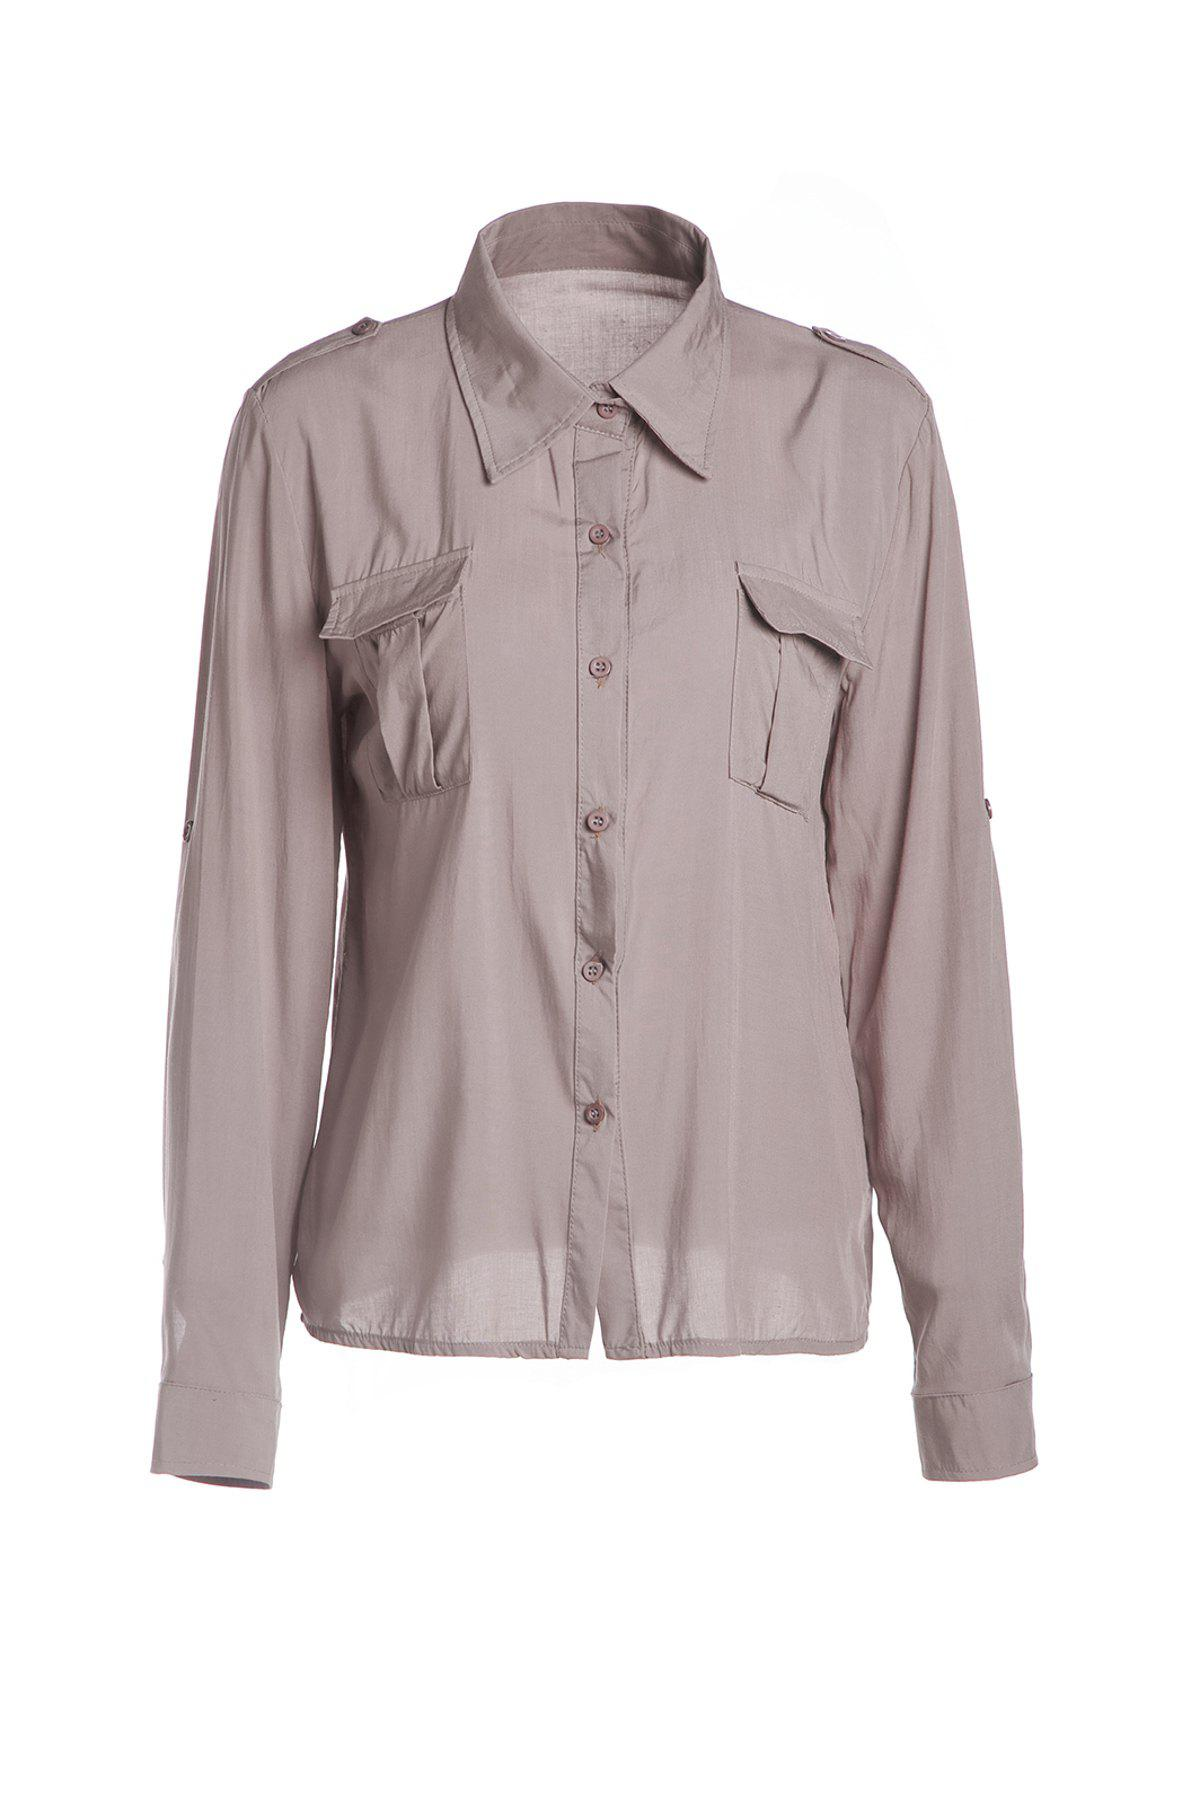 Fashionable Pocket Design Single-Breasted Long Sleeve Shirt For WomenWomen<br><br><br>Size: XL<br>Color: KHAKI